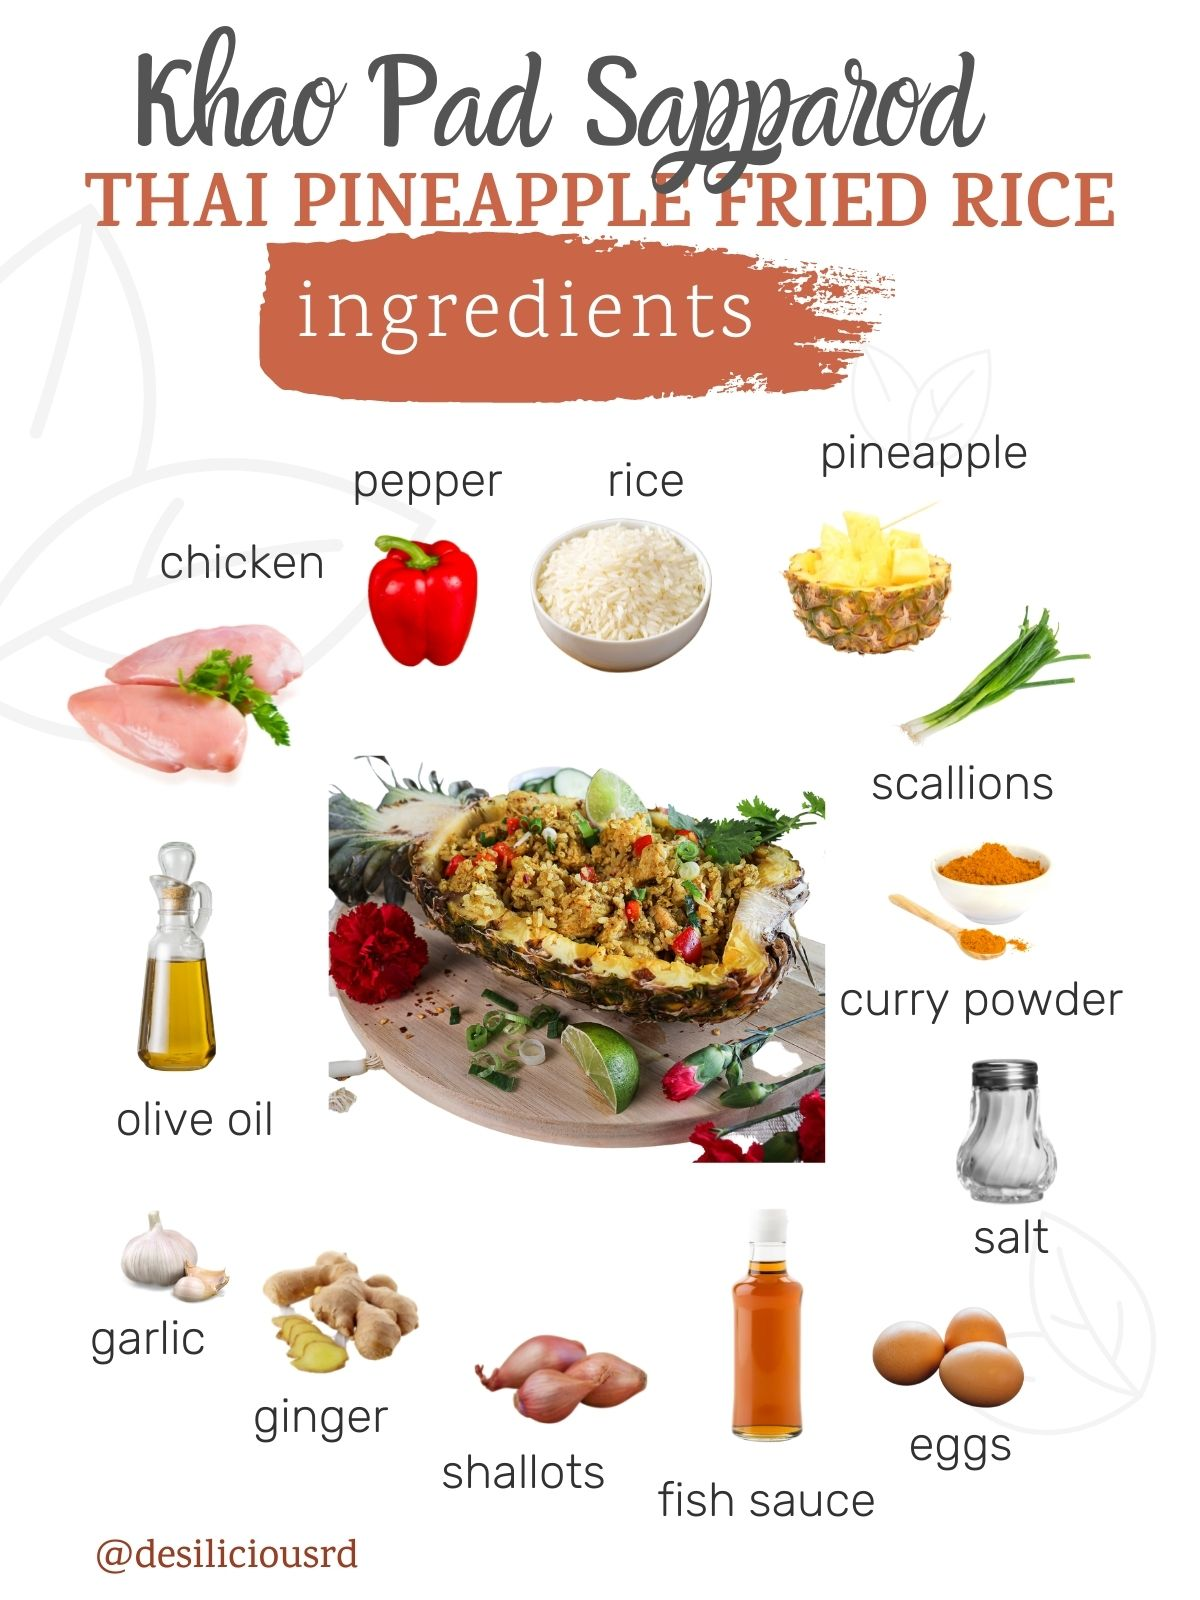 graphic showing ingredients required to make Thai pineapple fried rice (khao pad sapparod) with accompanying labels